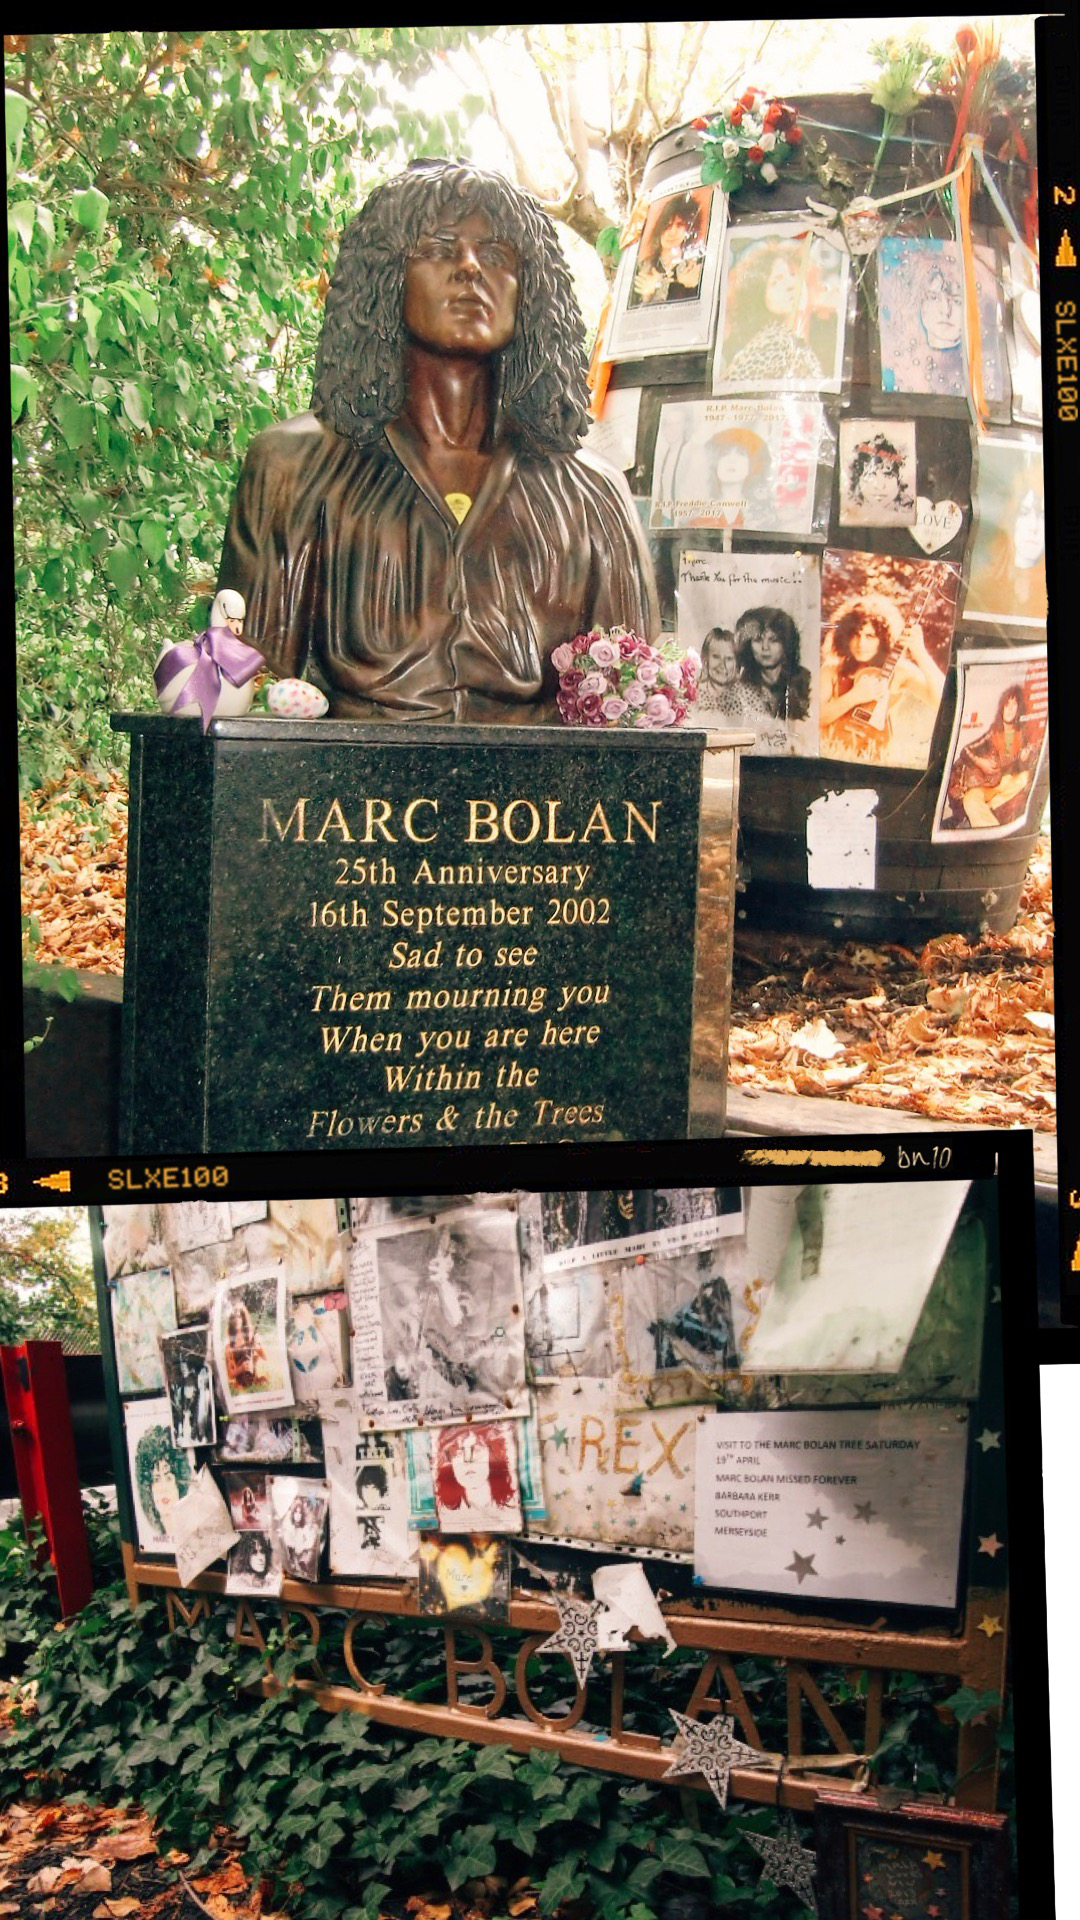 THE MARC BOLAN MEMORIAL - Bolan's Rock Shrine is located at the site where Bolan died in a car crash in 1977. The memorial is considered as a pilgrimage site to fans of Bolan.Location:Queen's Ride, Barnes Common, Barnes